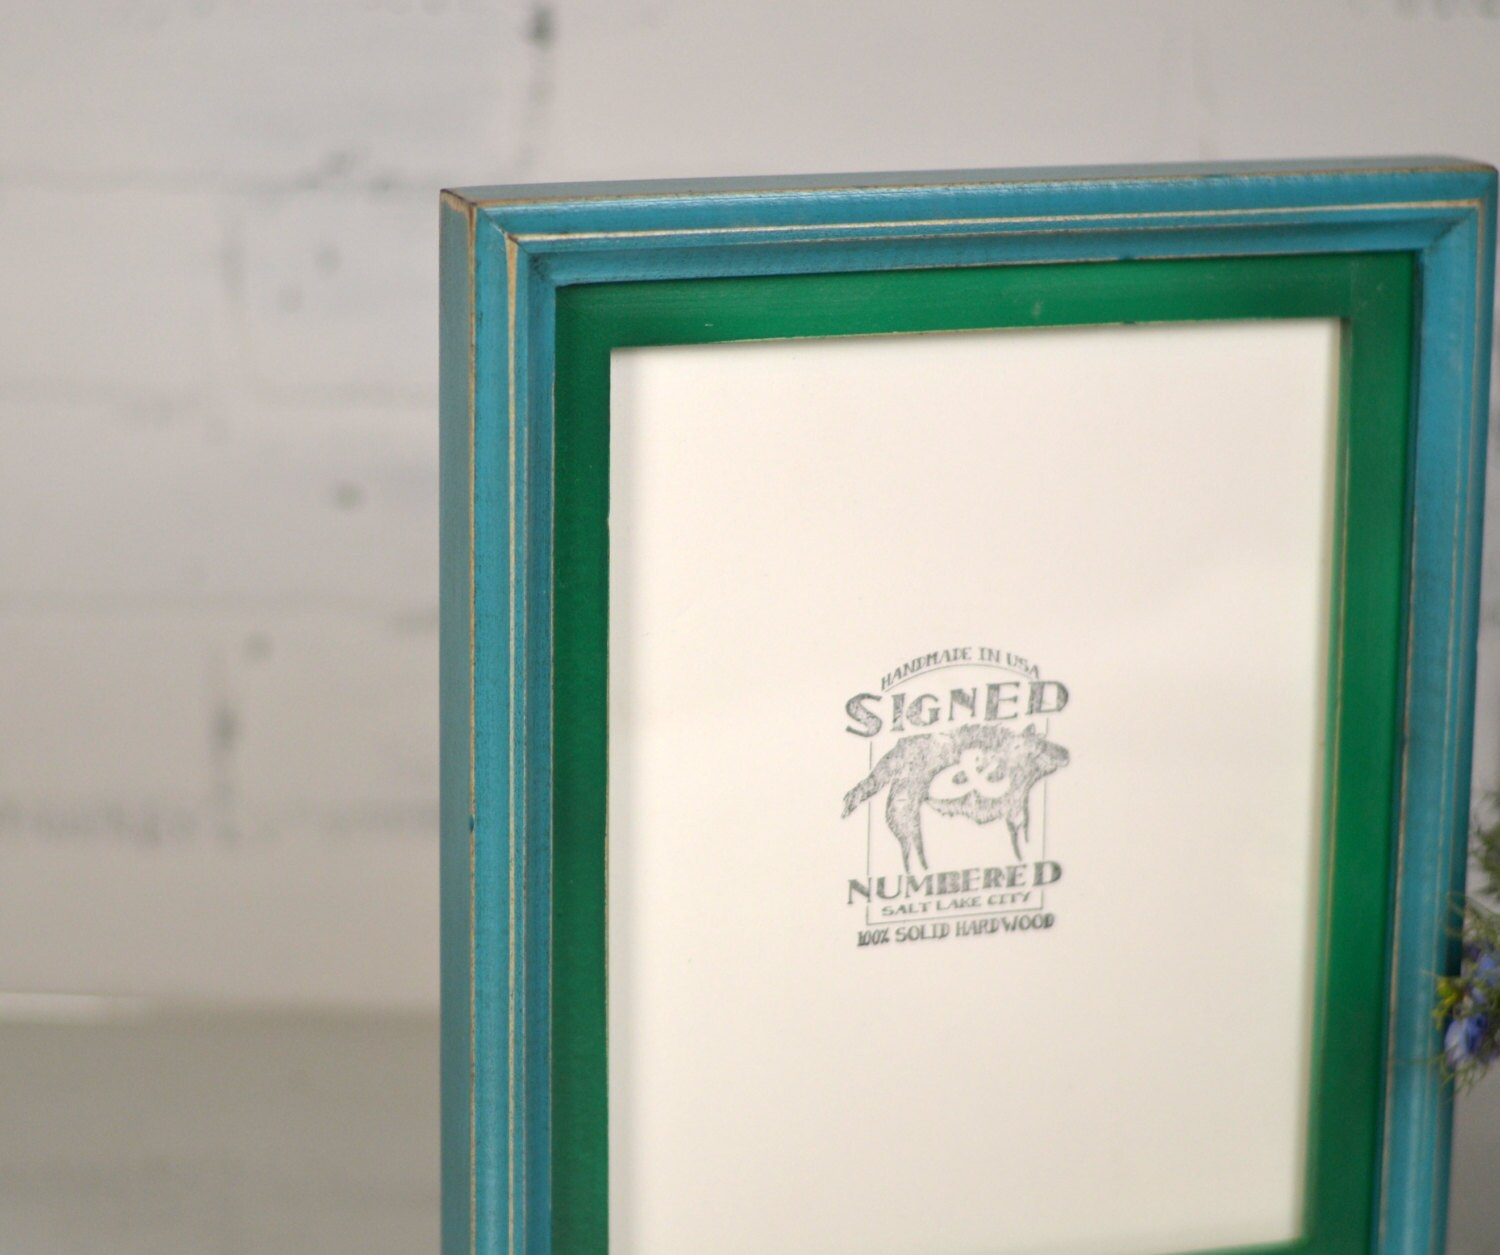 8x10 Picture Frame in 1x1 Double Cove Build Up Style and VINTAGE ...